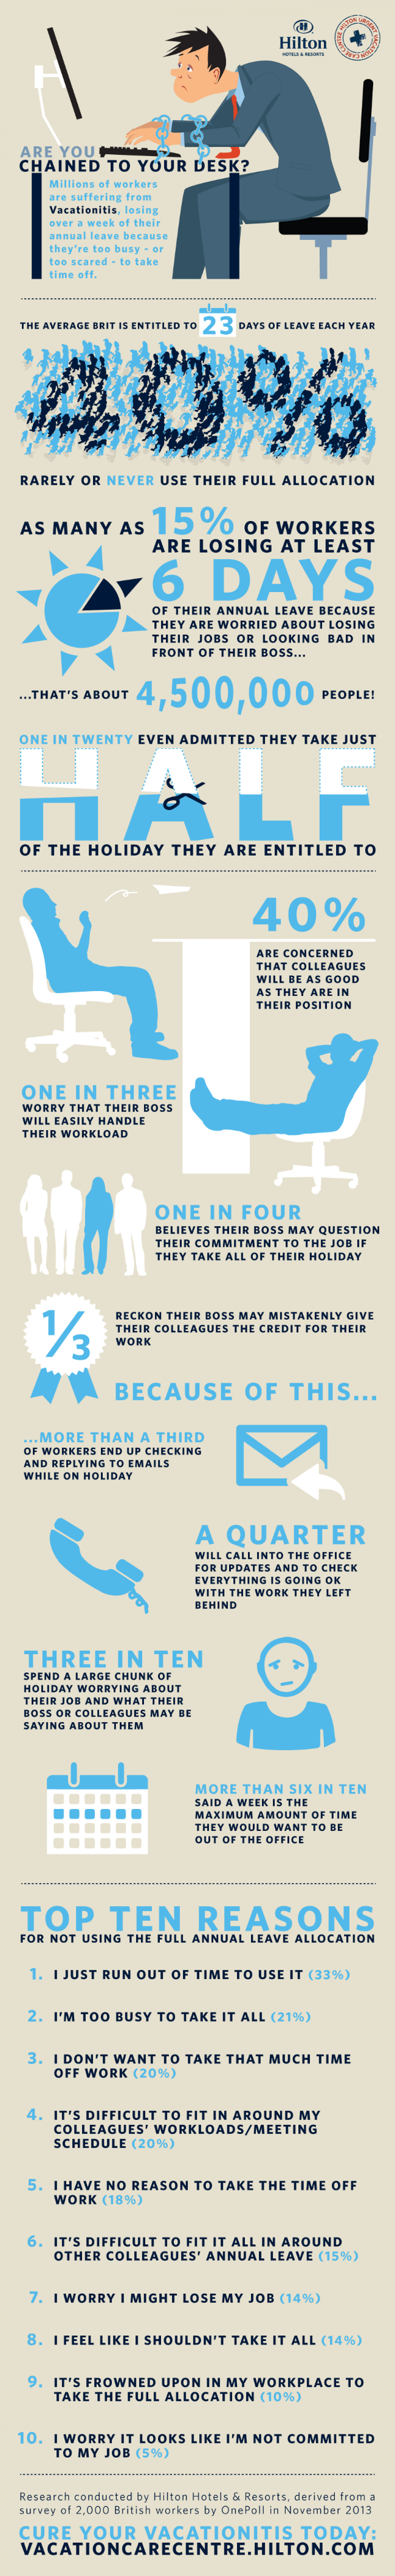 Are you chained to your desk? Infographic